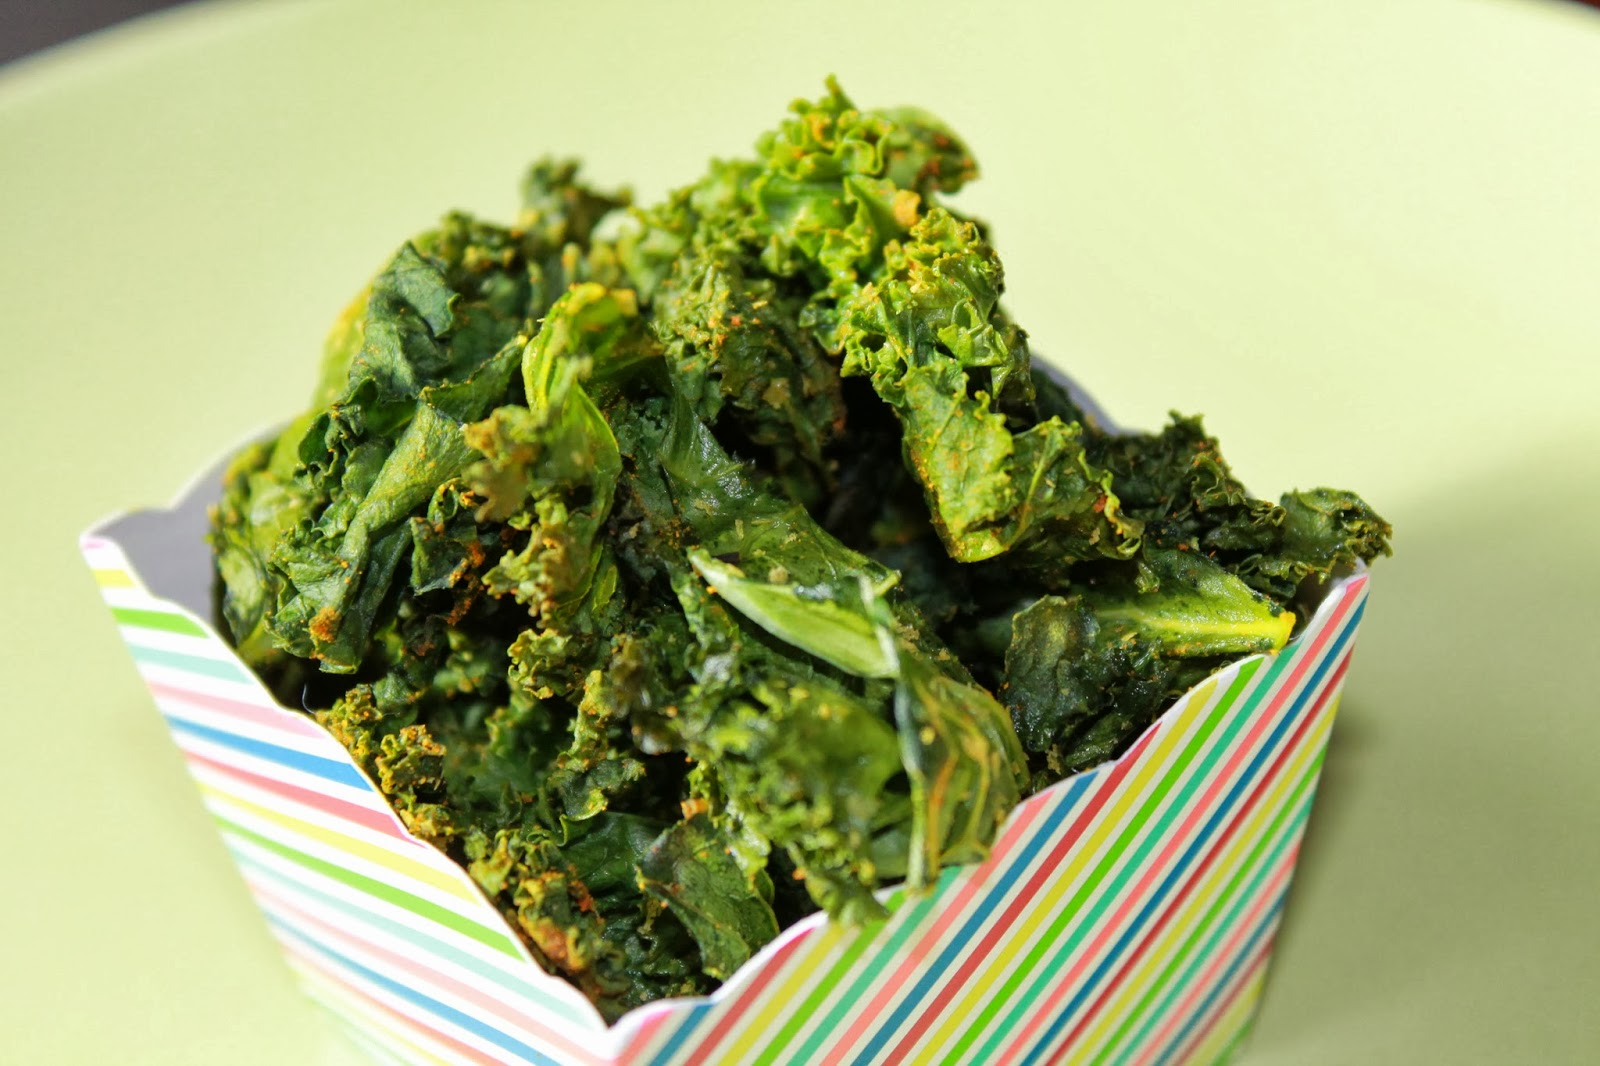 http://lisatsakos.blogspot.ca/2014/02/kale-chips-with-turmeric-recipe.html